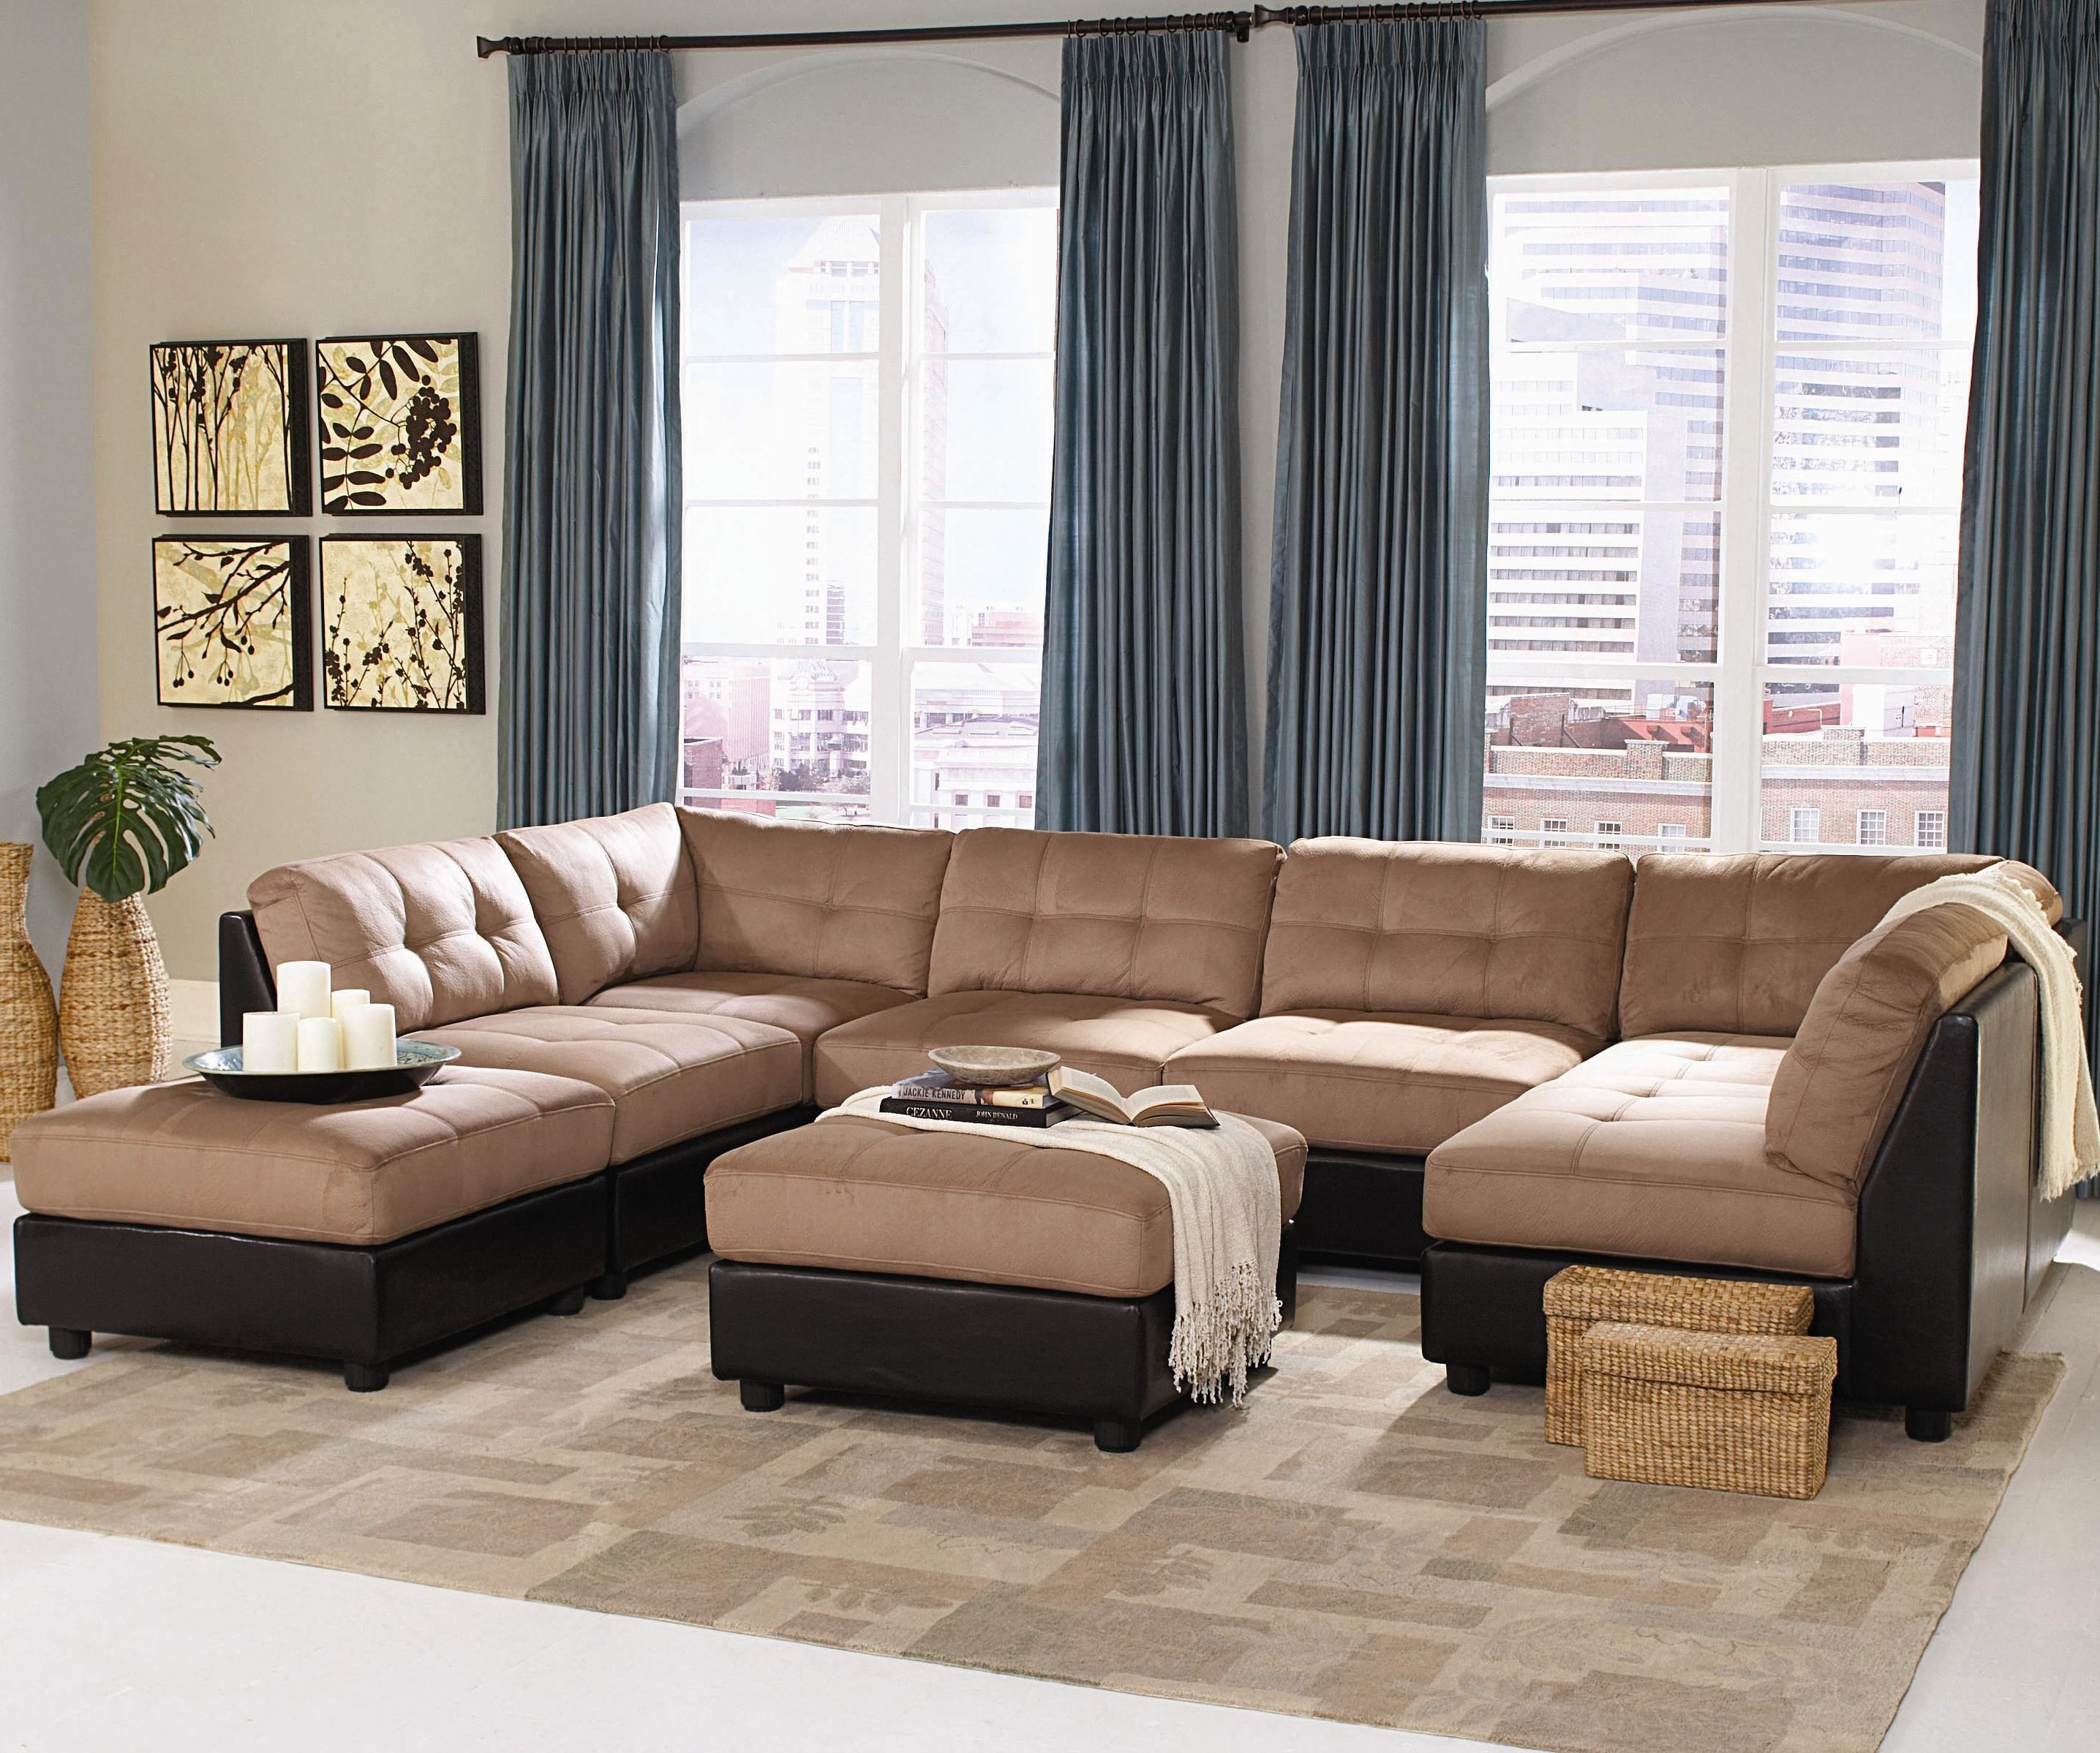 Living Room Furniture Sales: 20 Top Traditional Sectional Sofas Living Room Furniture